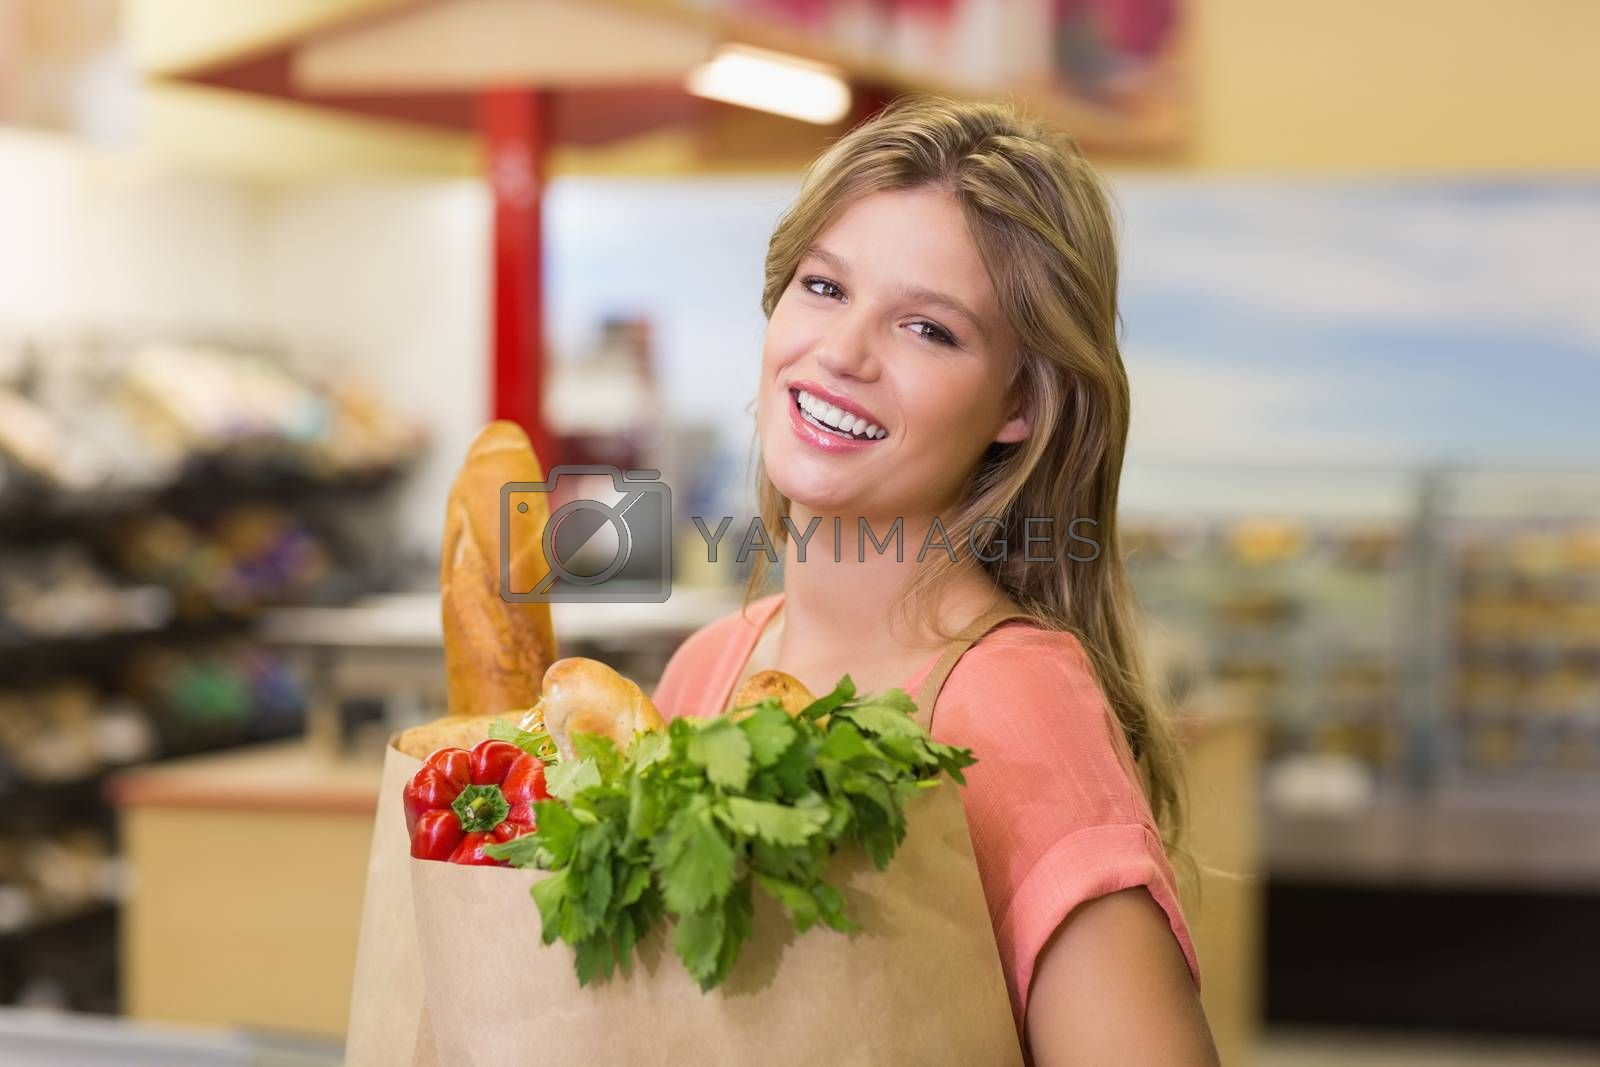 Royalty free image of Portrait of pretty smiling blonde woman buying food products  by Wavebreakmedia